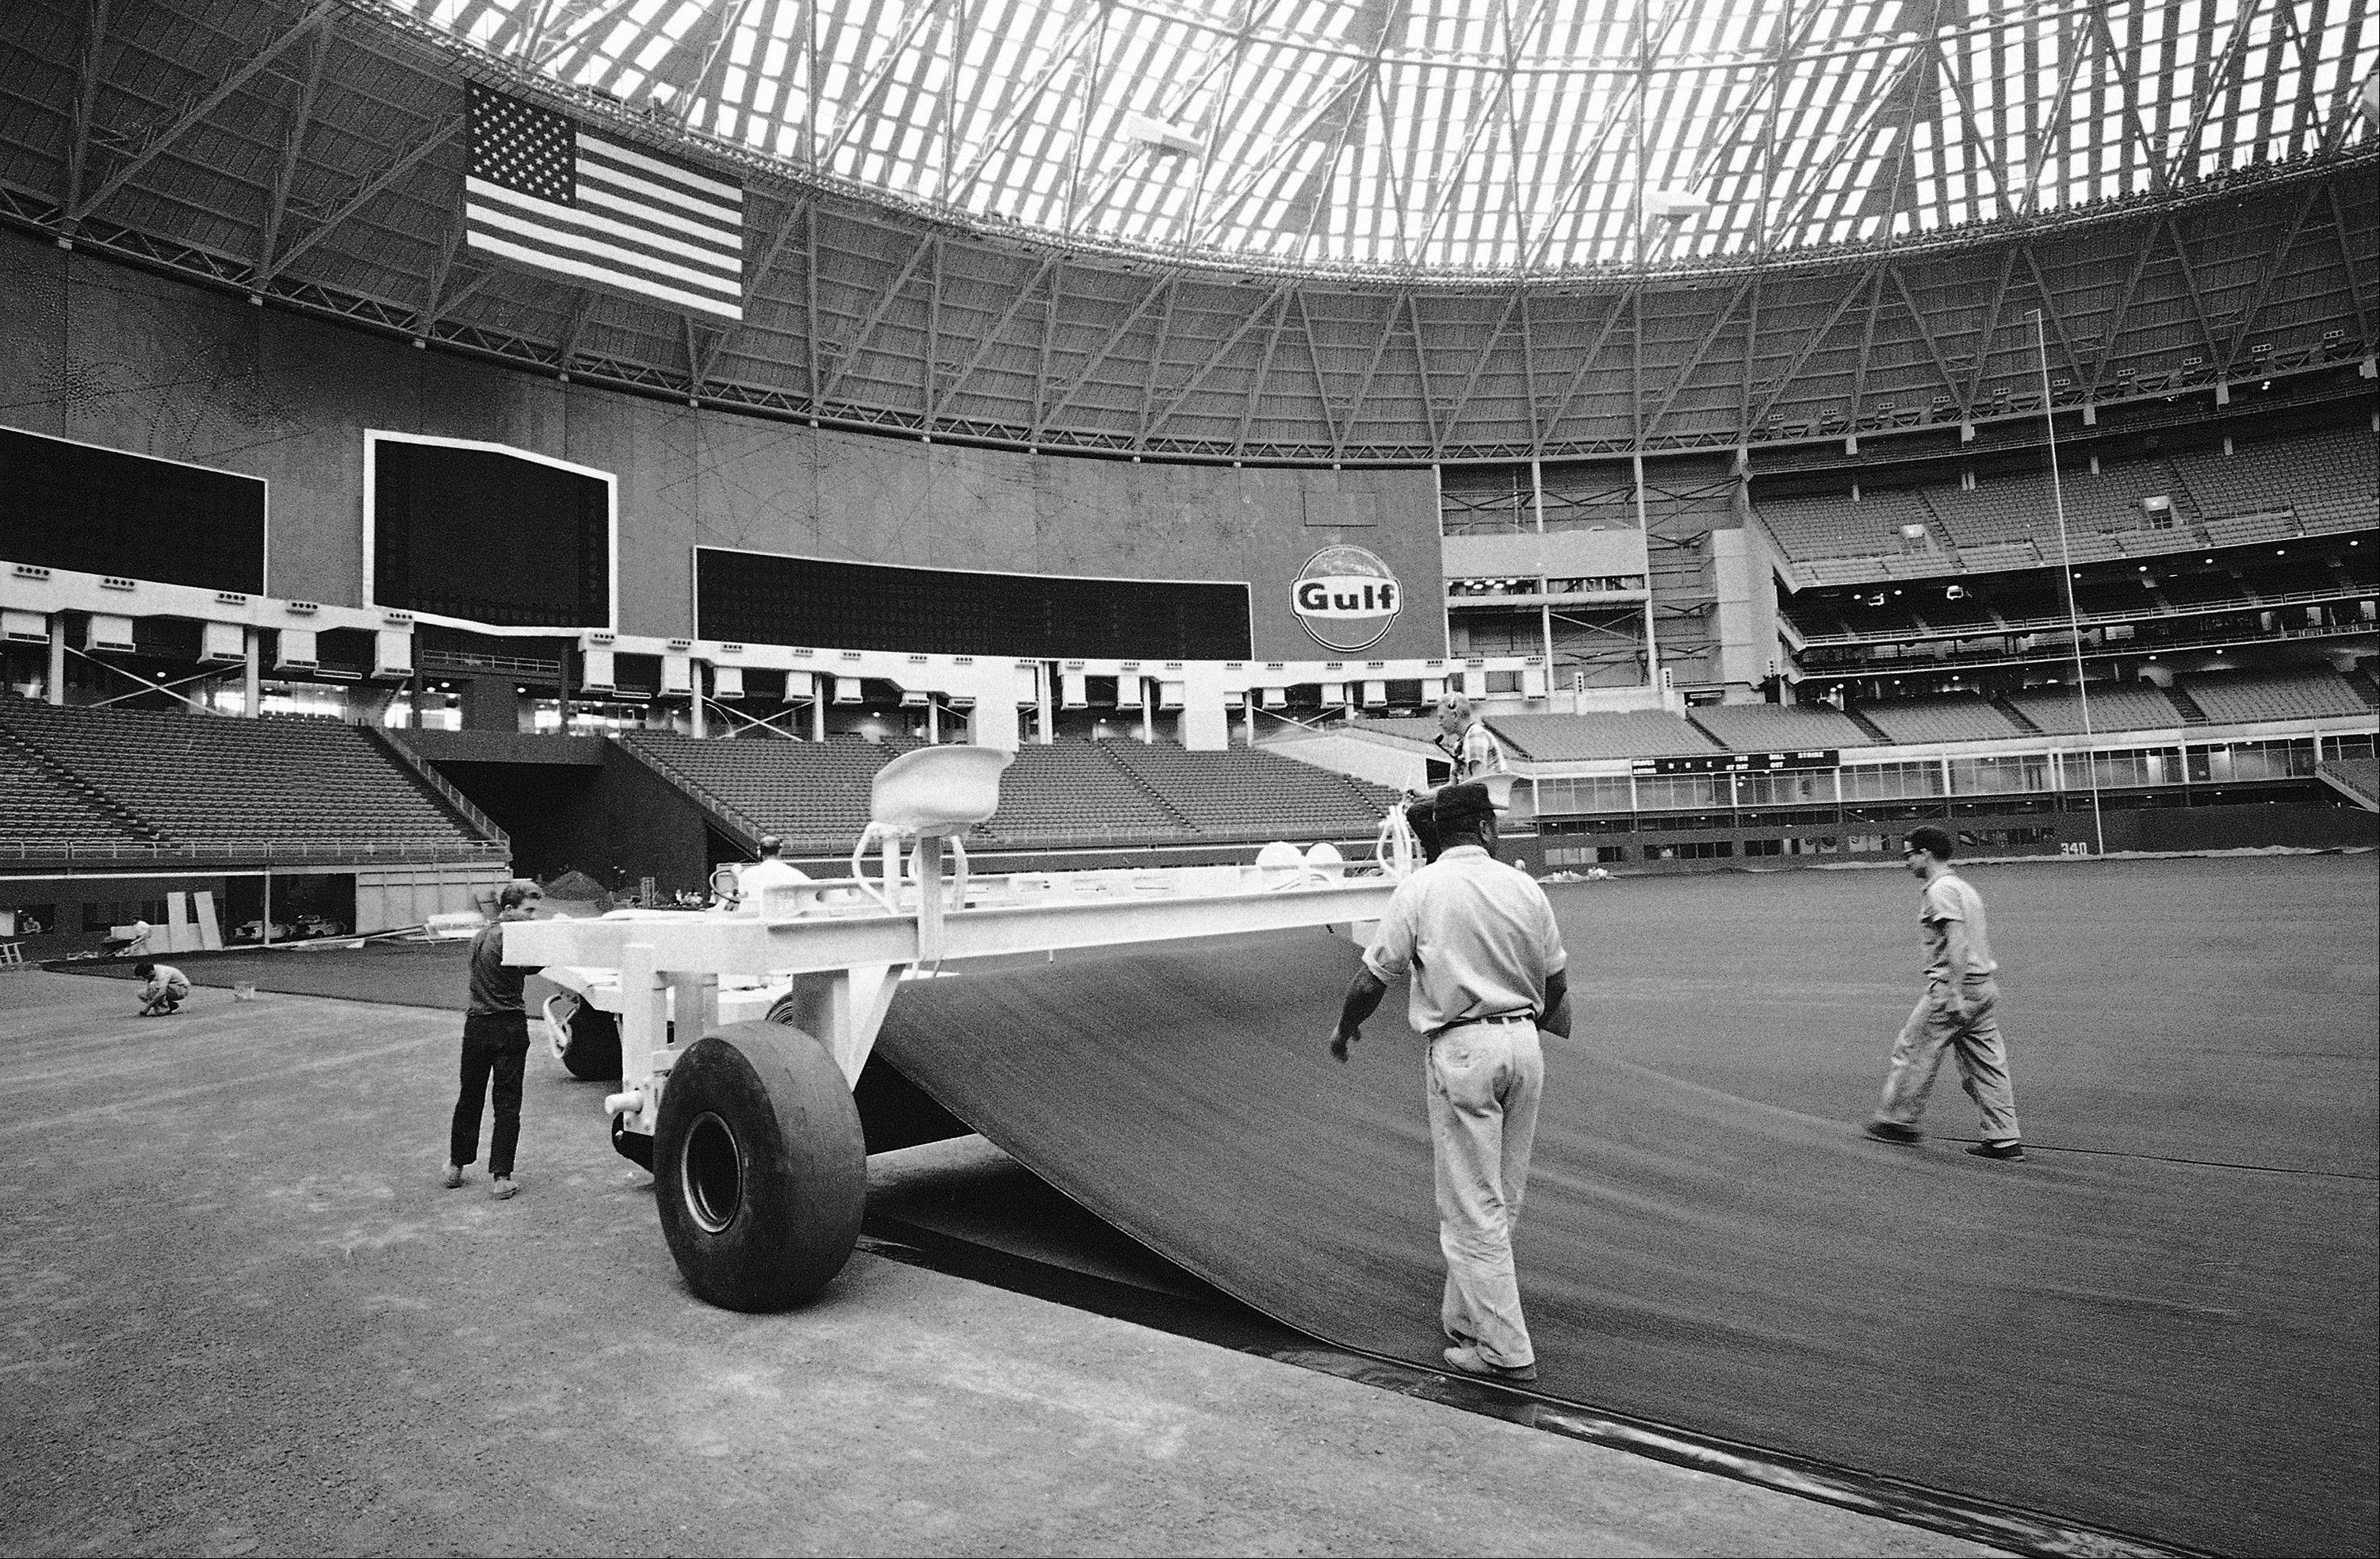 The Astrodome in Houston, Texas is the world?s first covered baseball stadium. It keeps out the rain, the wind, the sleet, the snow and it also keeps out the sun. Because of the last attribute the grass doesn?t grow well at the Astrodome, so it?s being replaced. In its place ?Astroturf? is being installed. Astroturf is a green synthetic nylon that is installed like a wall-to-wall-carpet in strips 14-feet wide and costs $2.00 per square feet. When the old cry of ?play ball? is heard the Astroturf is all zipped together and the fielders can chase fly balls all day without the slightest fear of stepping in a gopher hole. Workmen zipper up the Astroturf carpet completely covered the outfield, workers spread the warning track gravel along the fence in Houston on July 25, 1966.